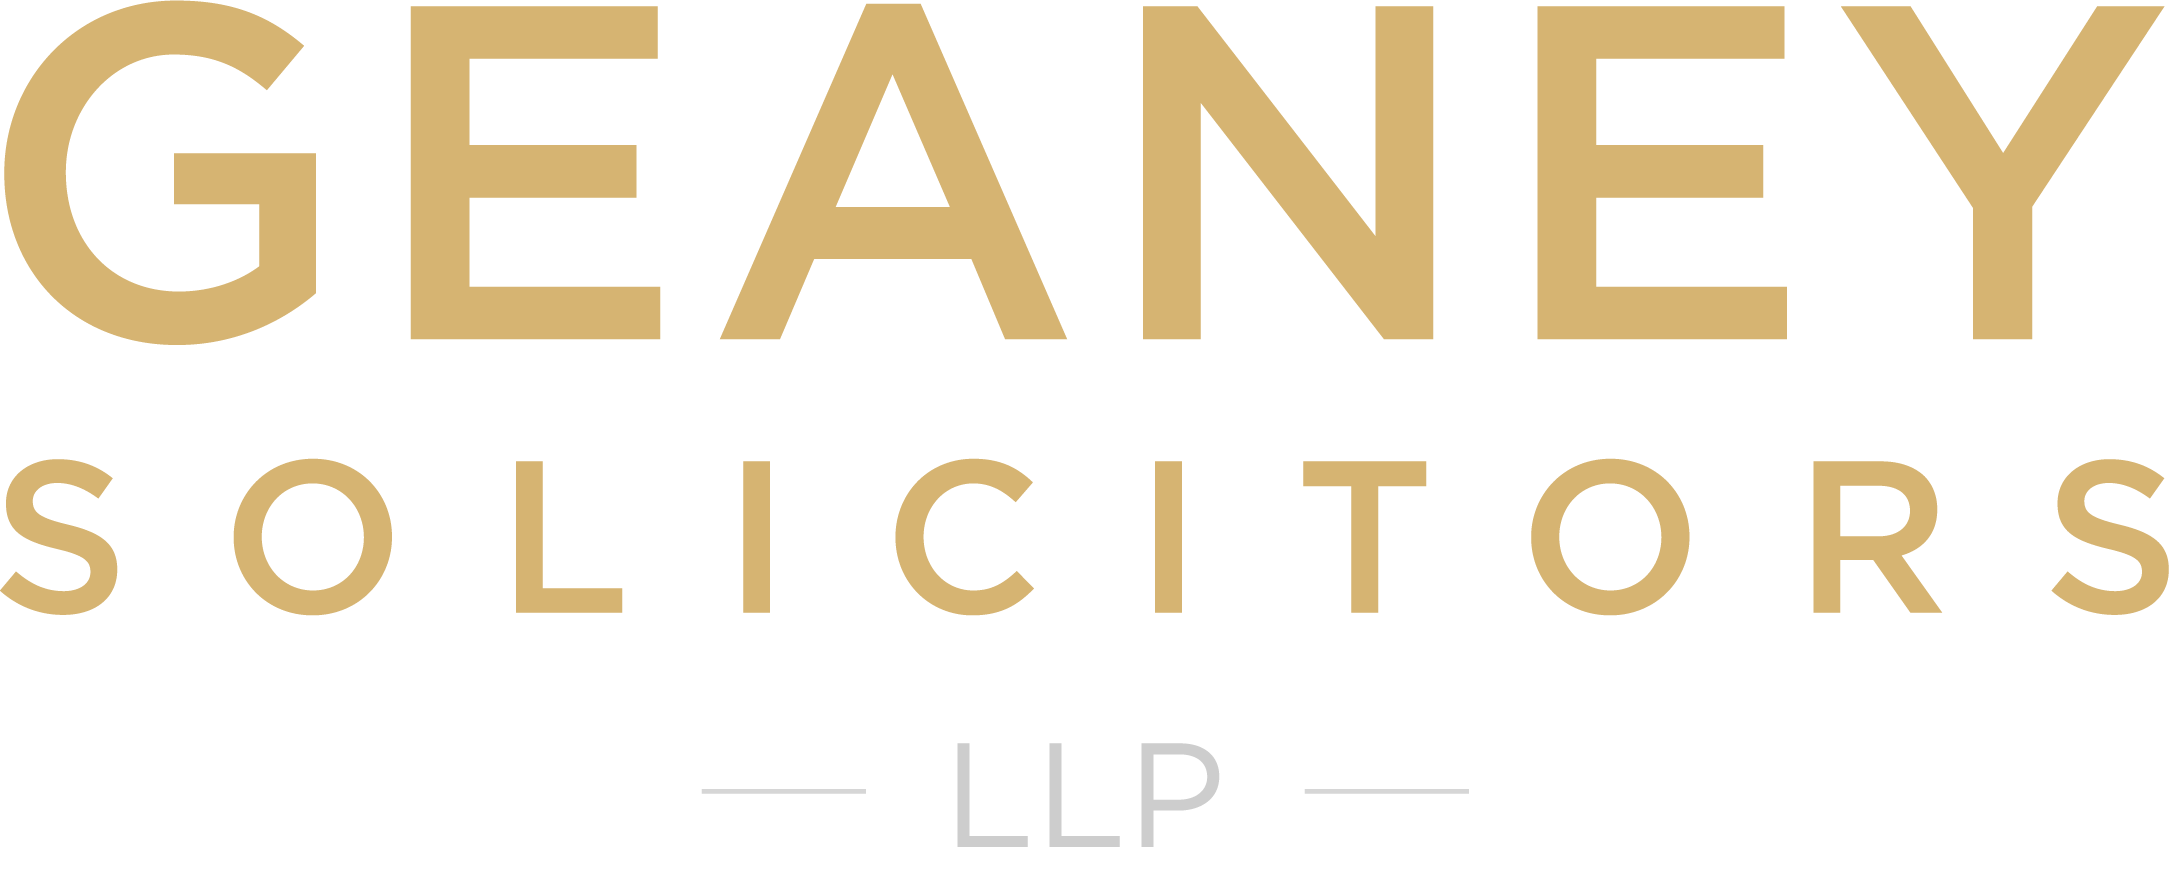 Geaney Solicitors Logo